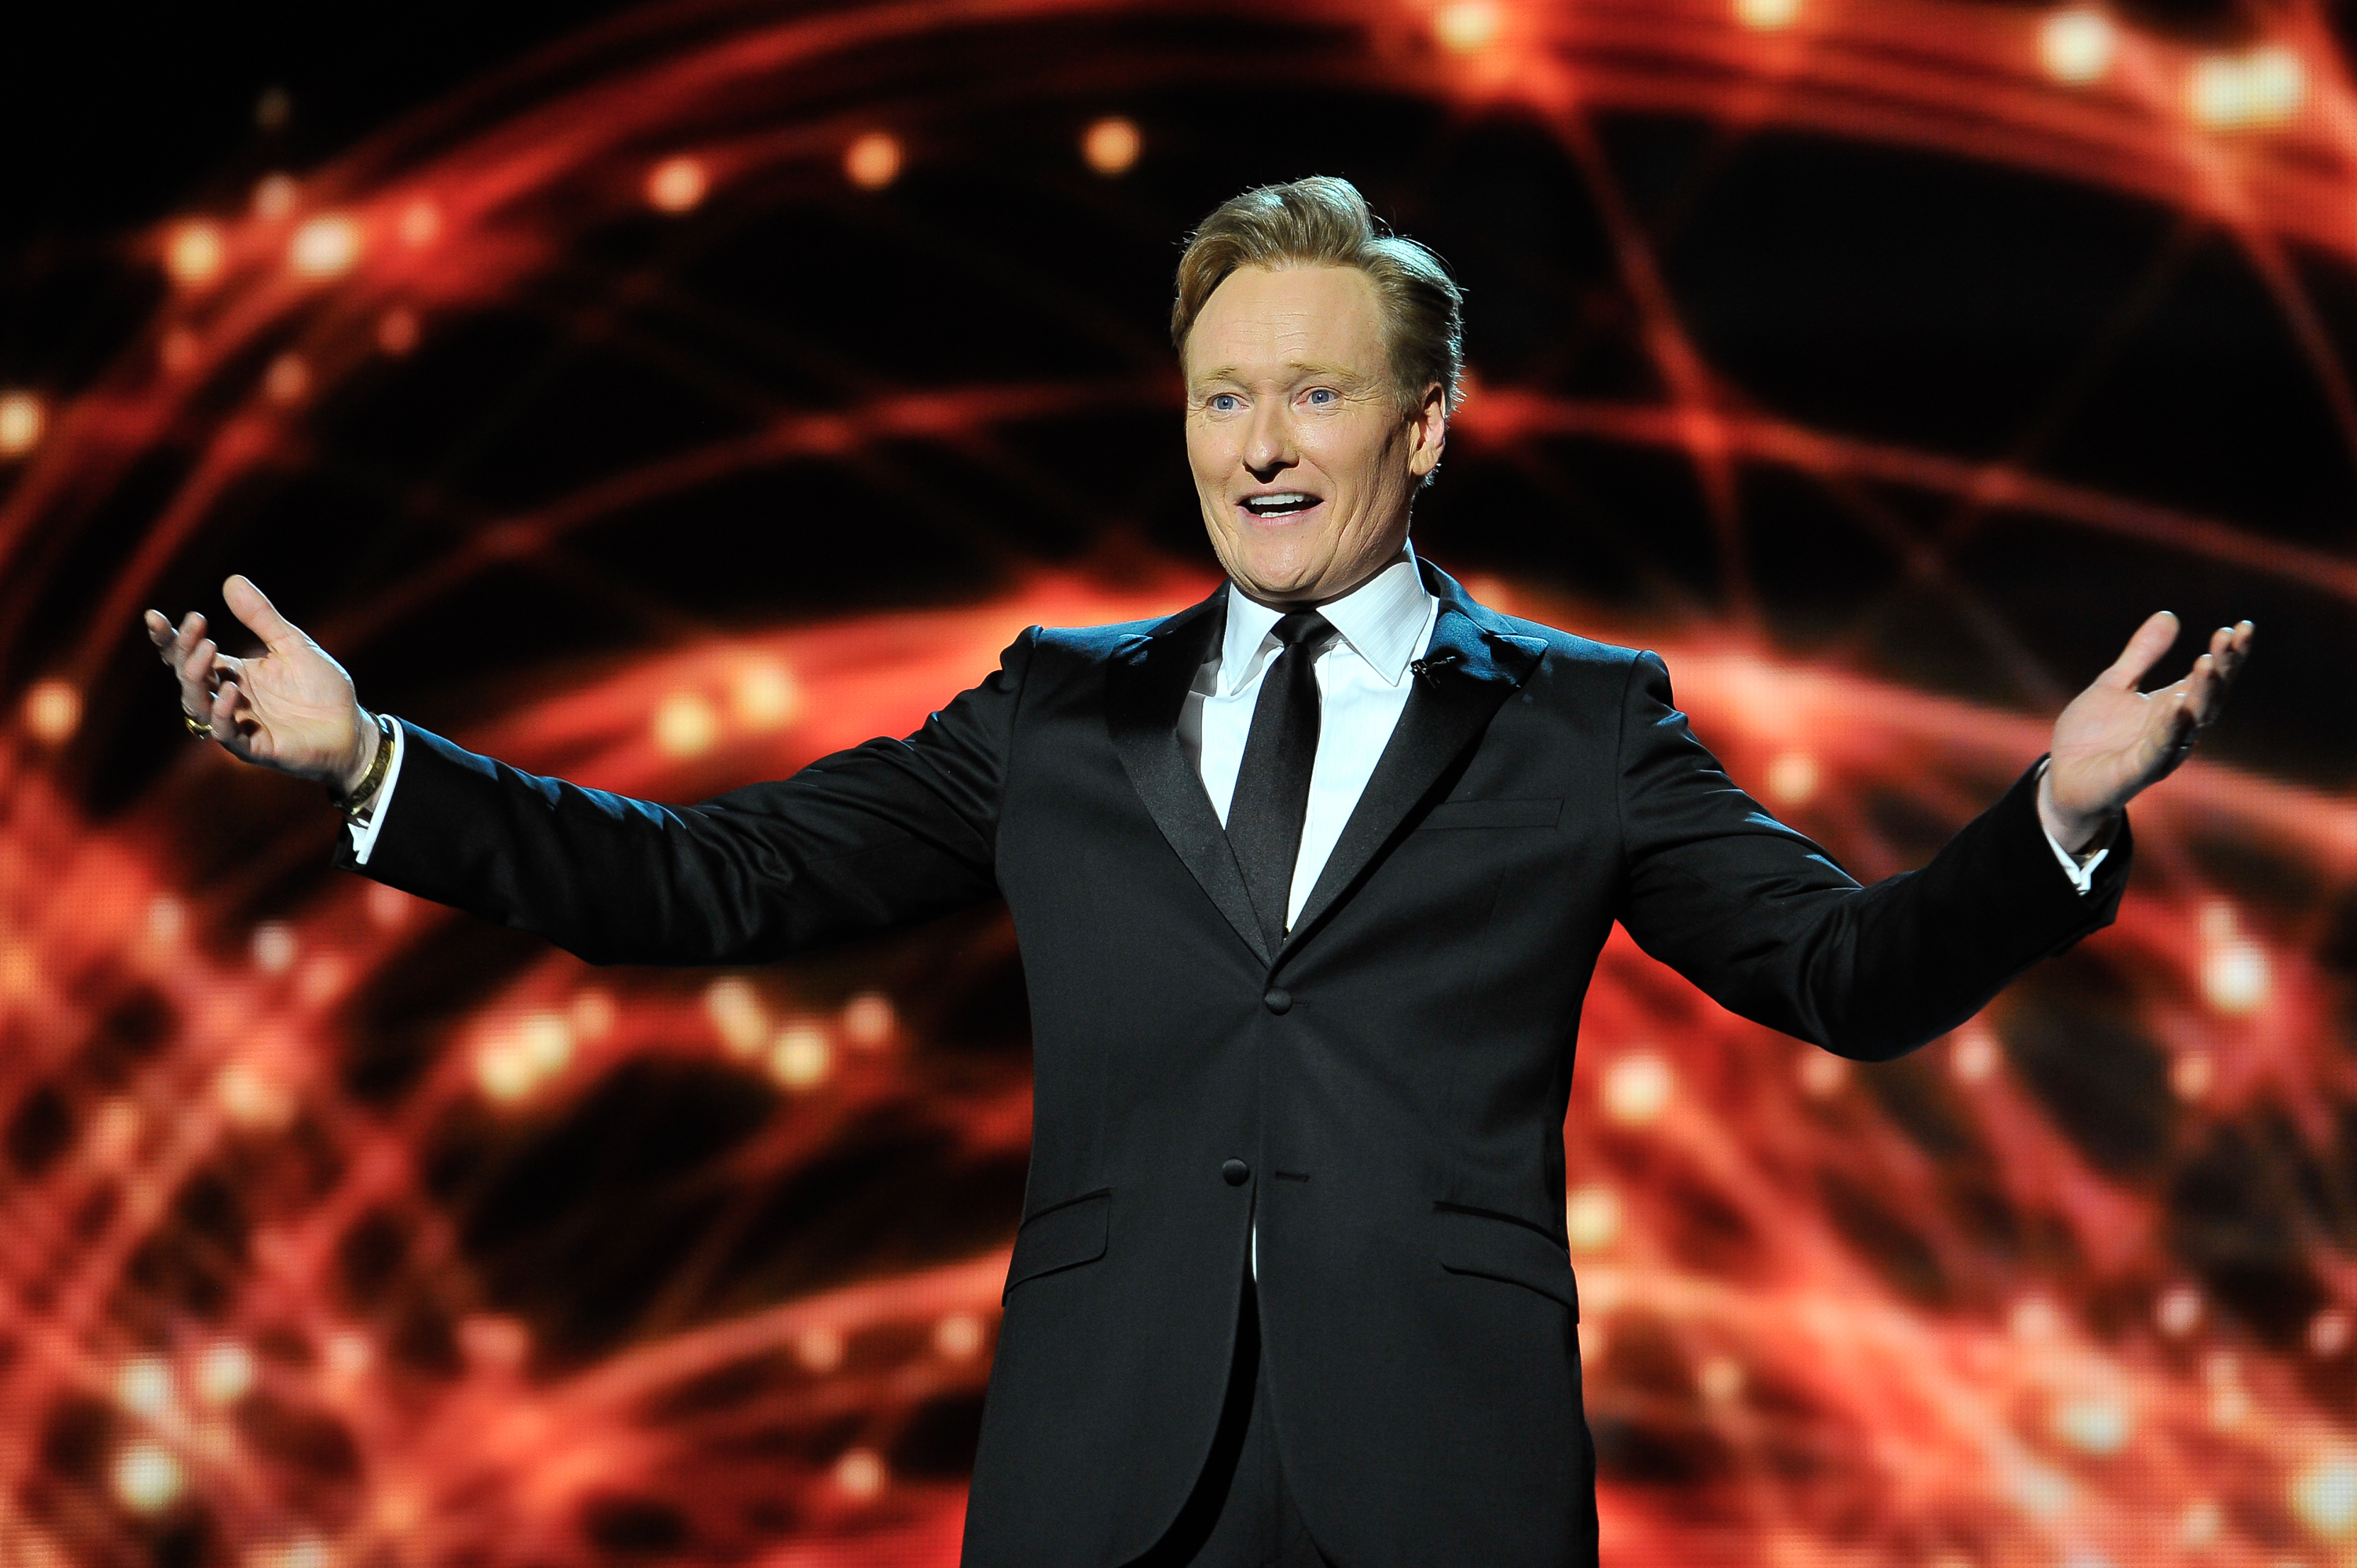 Conan O'Brien presenting at the 2014 Breakthrough Prizes Awarded in Fundamental Physics and Life Sciences Ceremony on Dec. 12, 2013 in Mountain View, Calif.